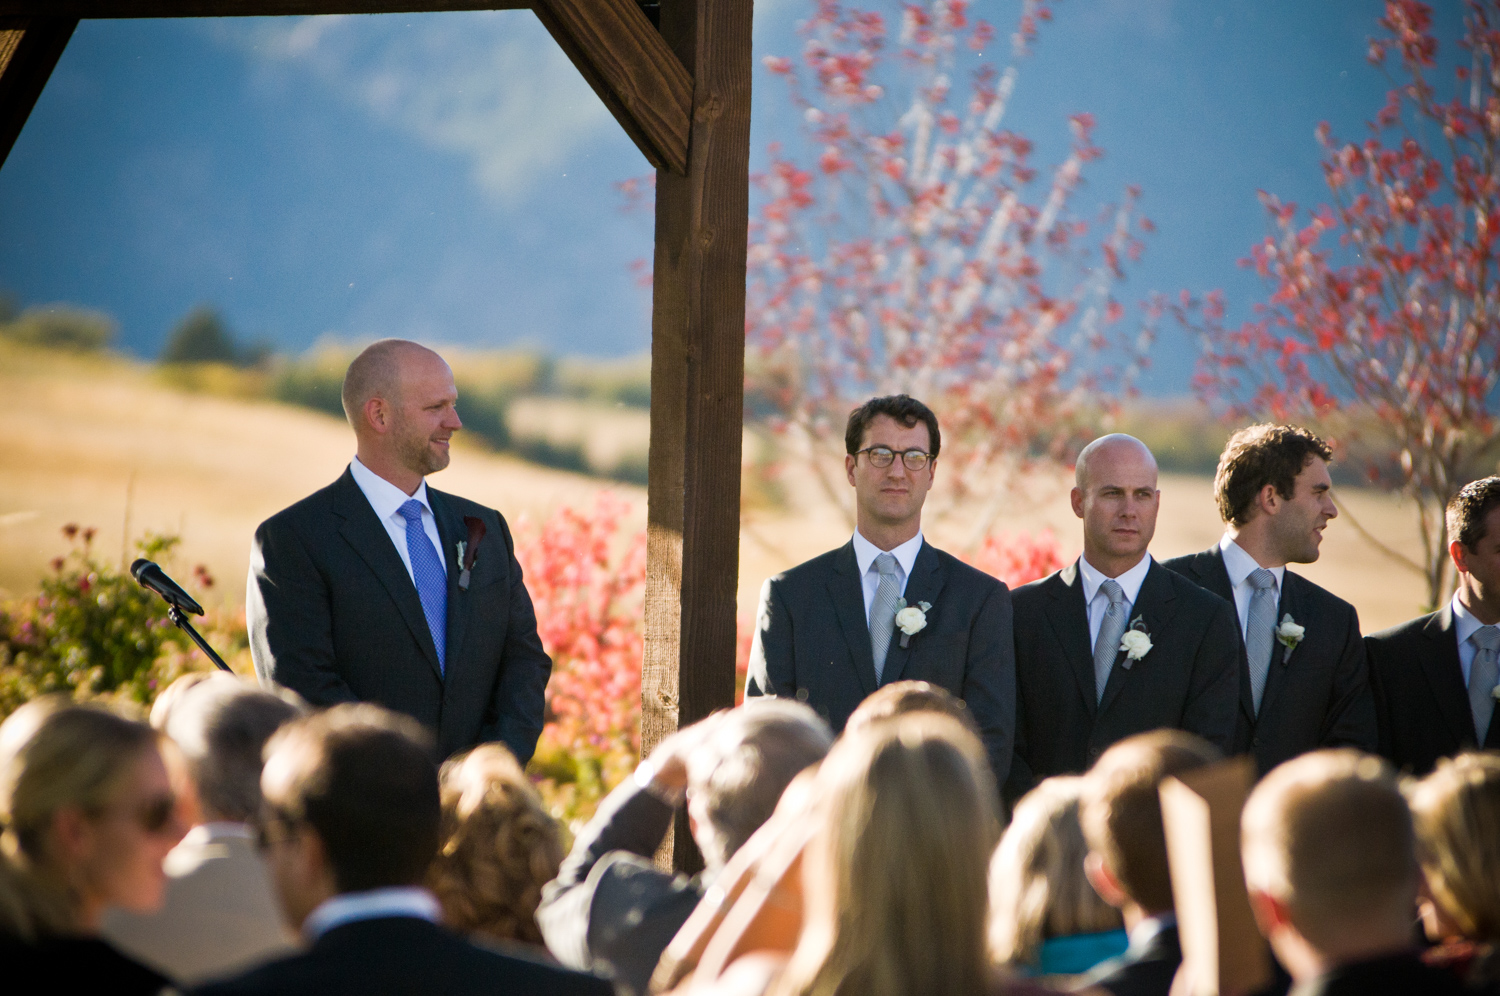 Crooked_Willow_Farms__Sedalia_Wedding_020.JPG